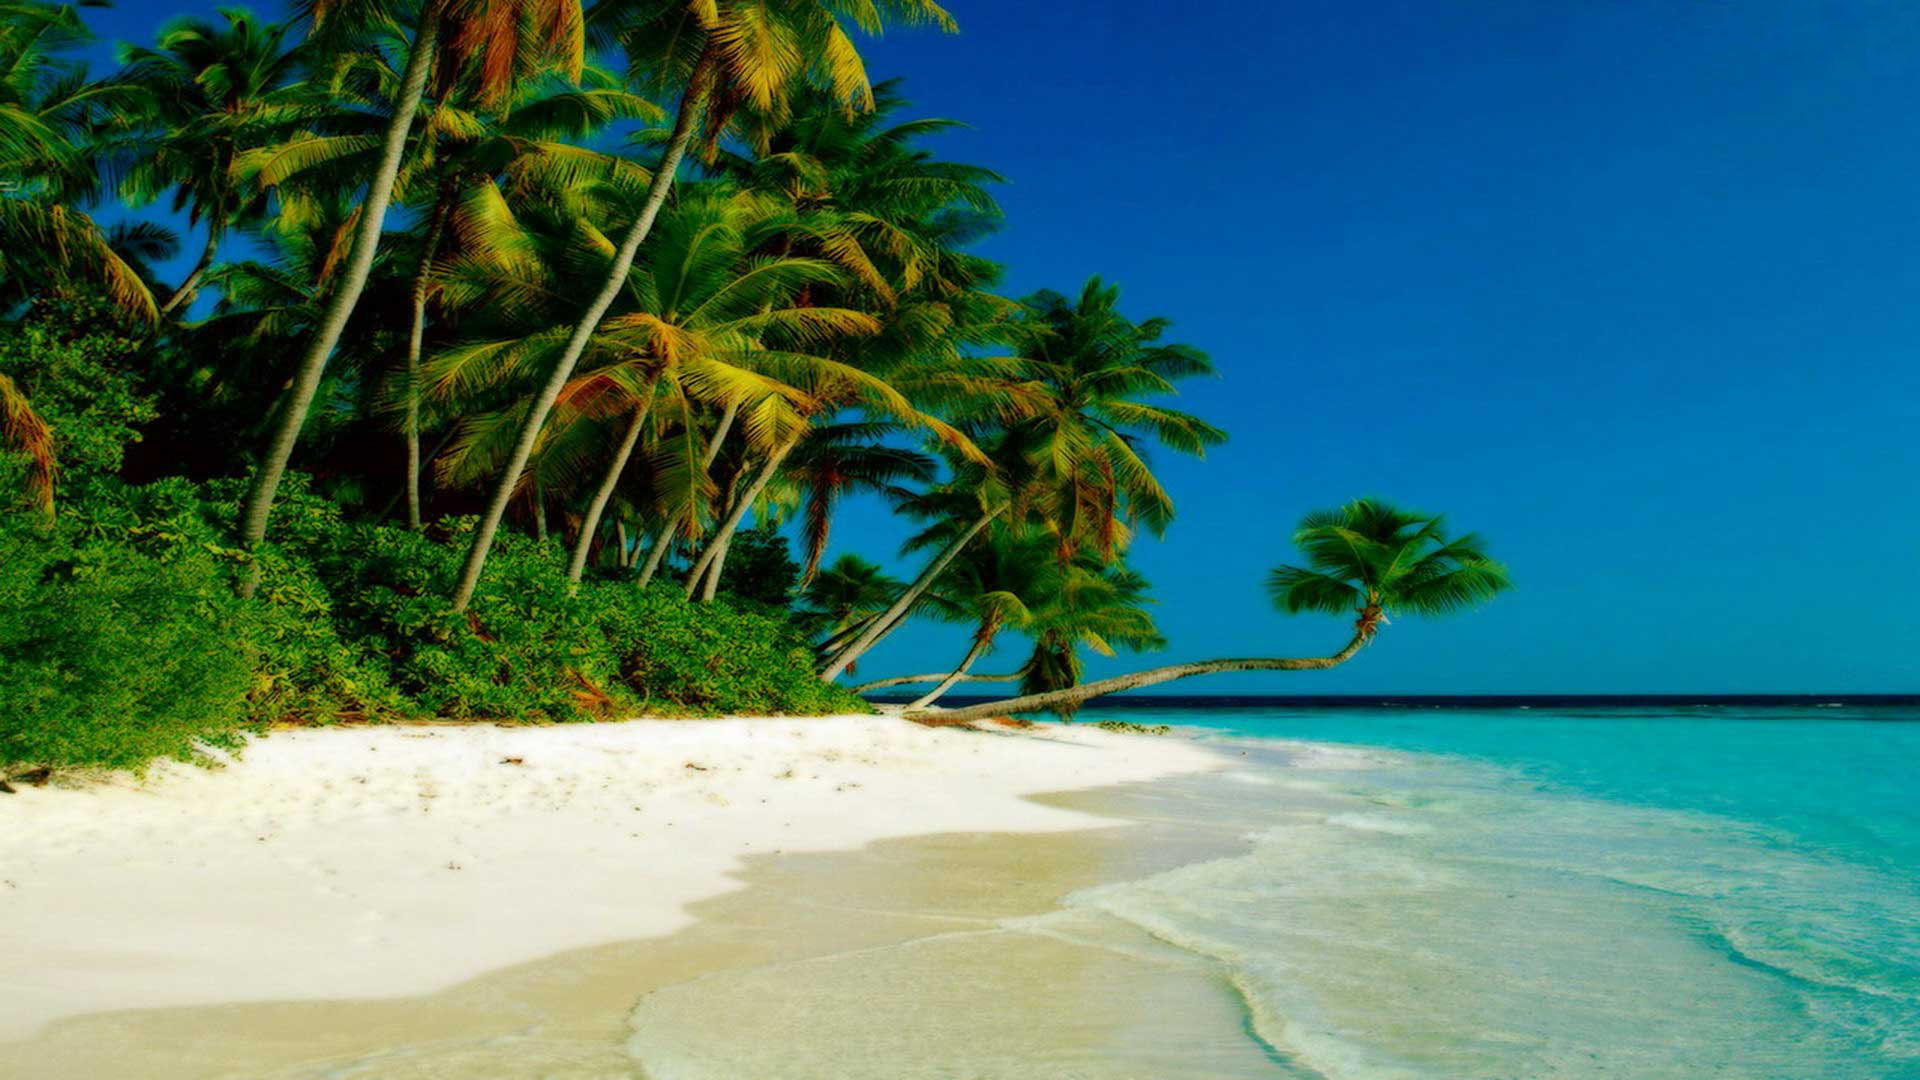 Beach Wallpapers Hd 23049 Wallpaper High Resolution 1920x1080